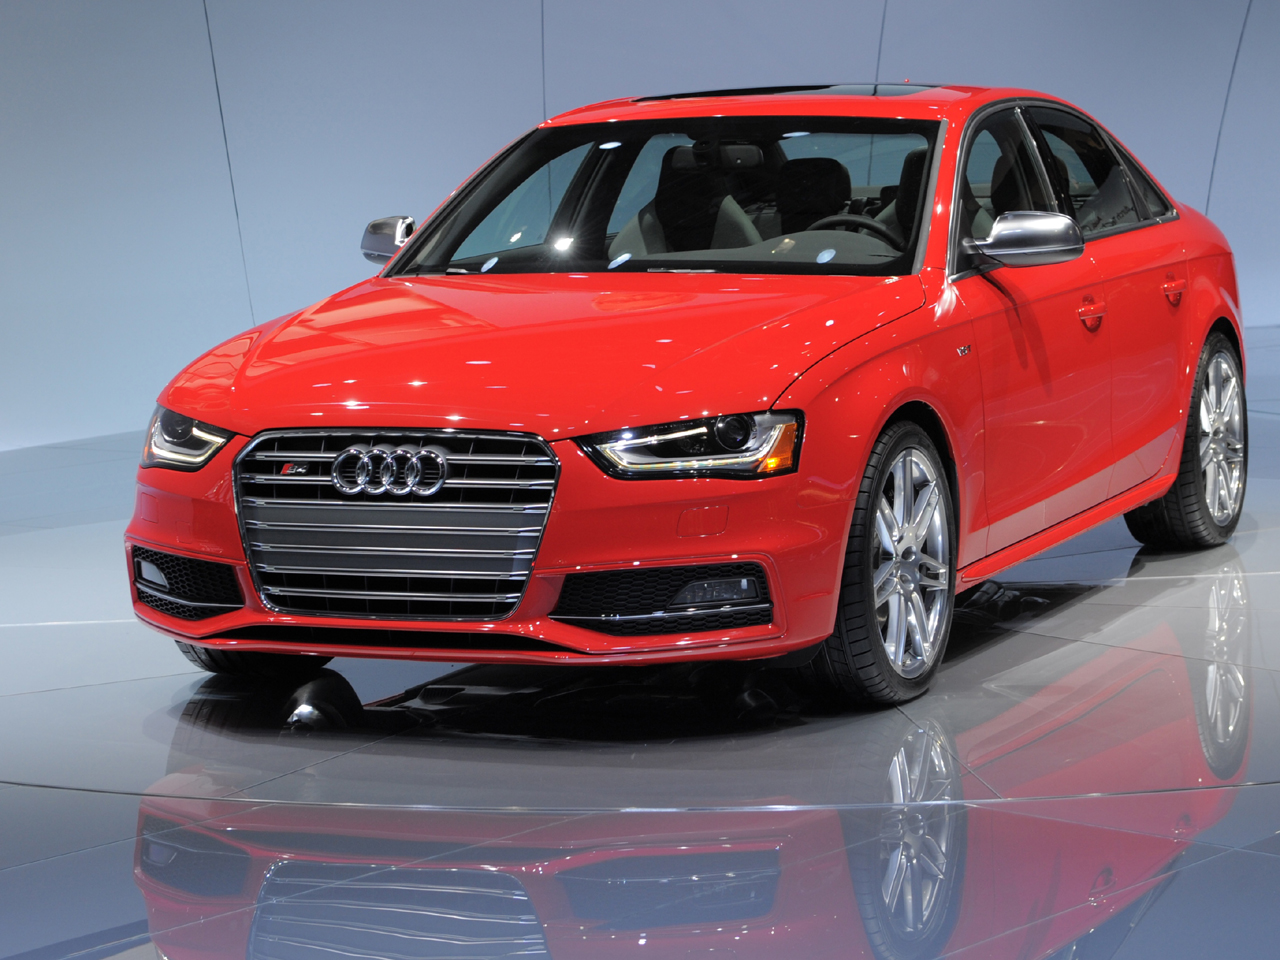 Air Bag Issue Prompts Audi Recall Cbs News